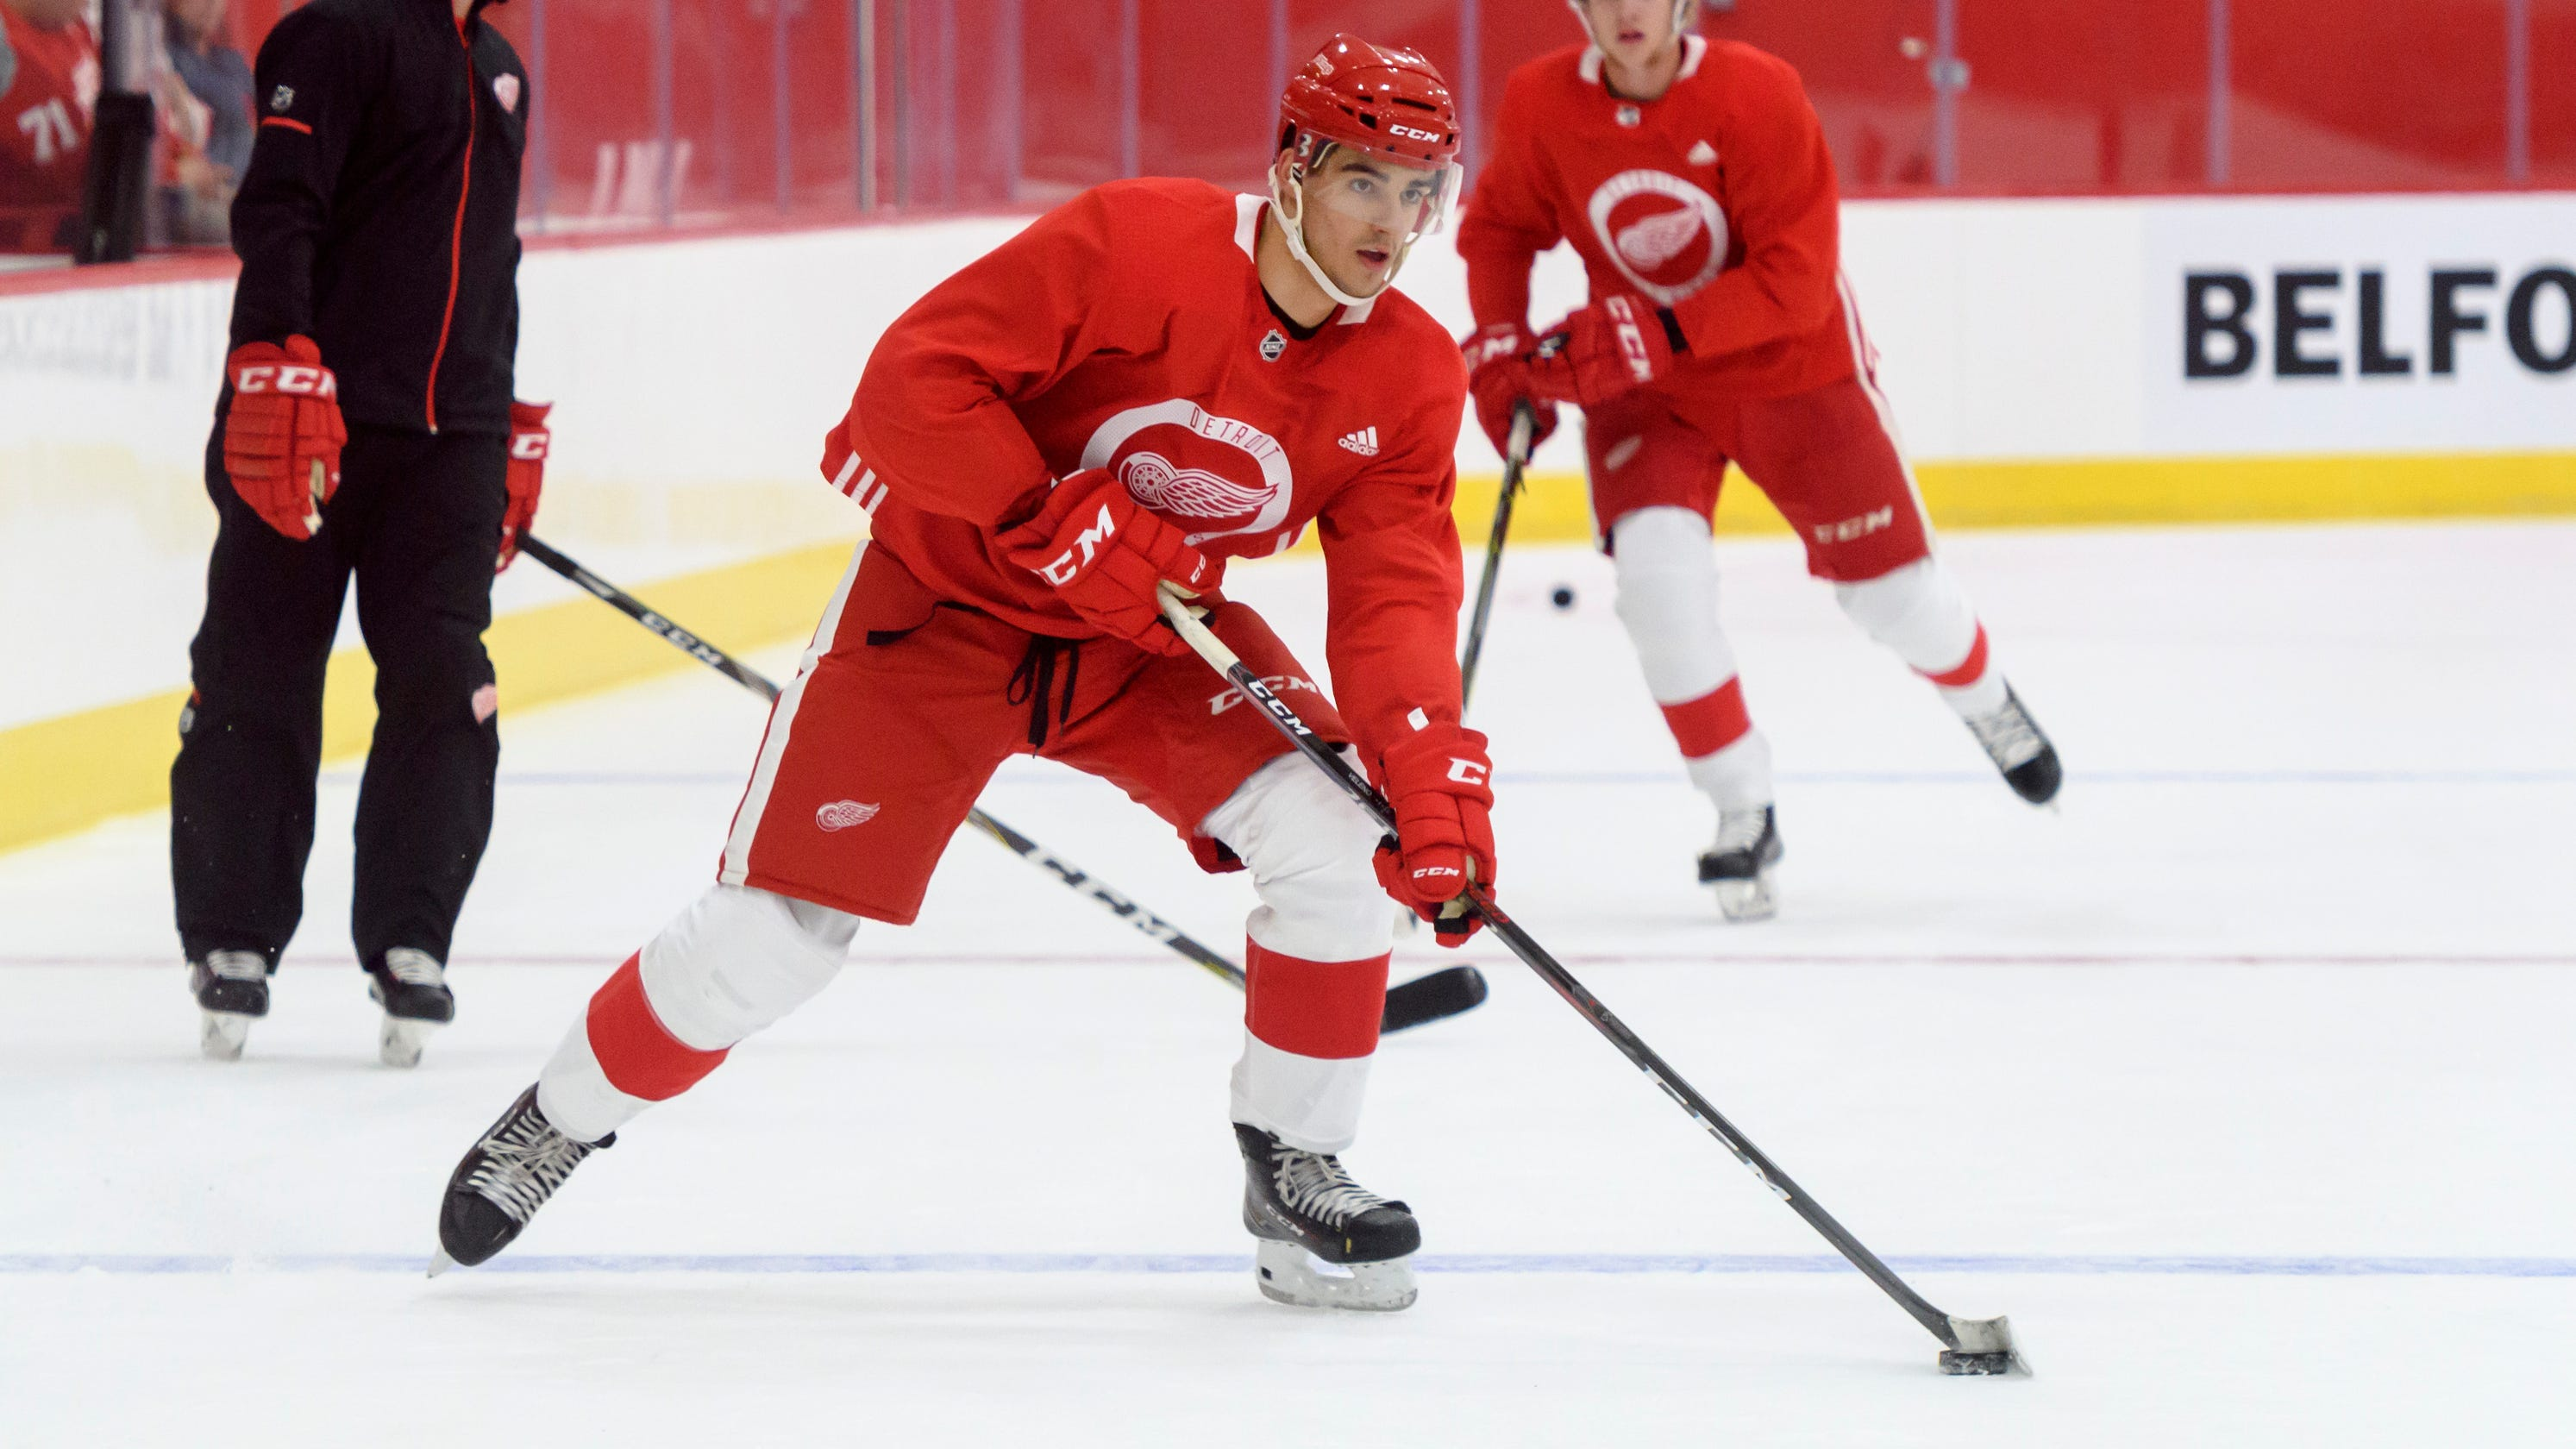 save off 8b519 7e53f Red Wings sign first-rounder Joe Veleno after big offensive season